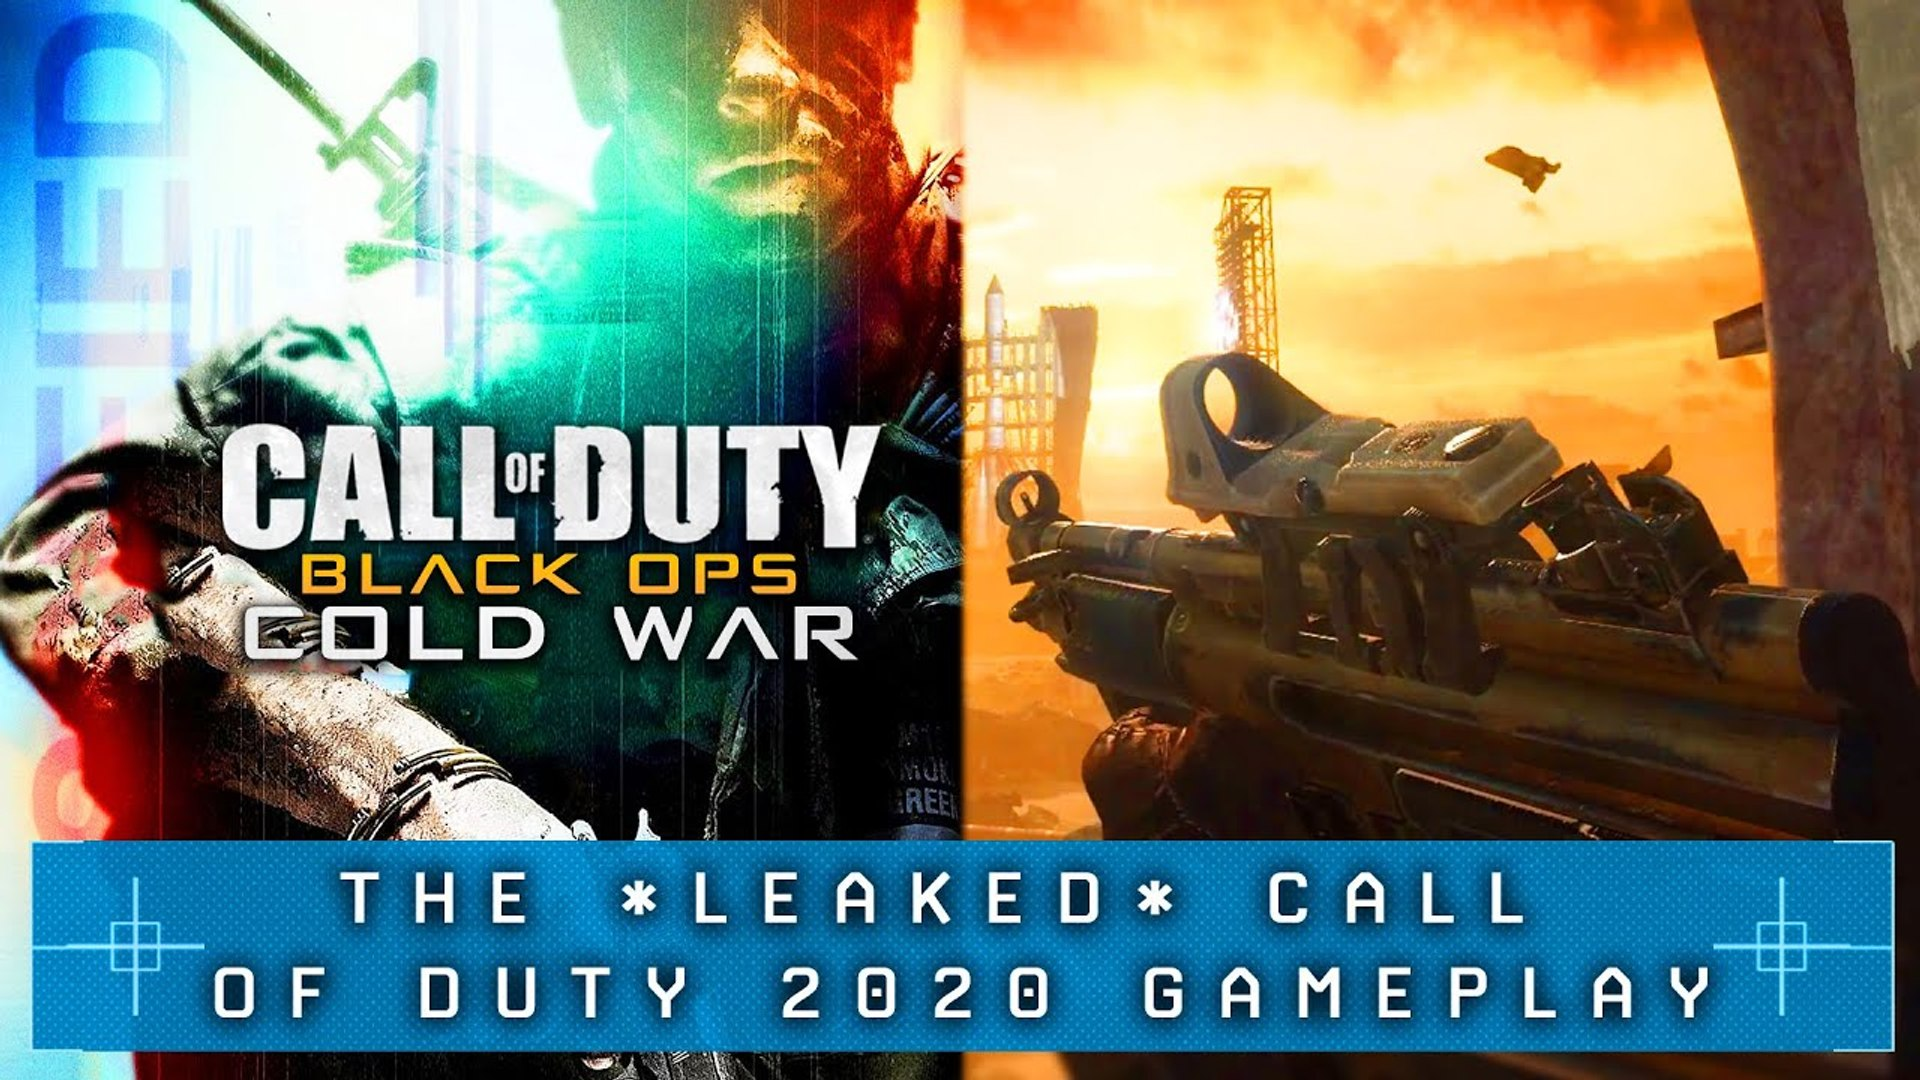 Black Ops Cold War Is Set In The Future First Weapon Revealed Cod 2020 Black Ops Cold War Leaked Video Dailymotion